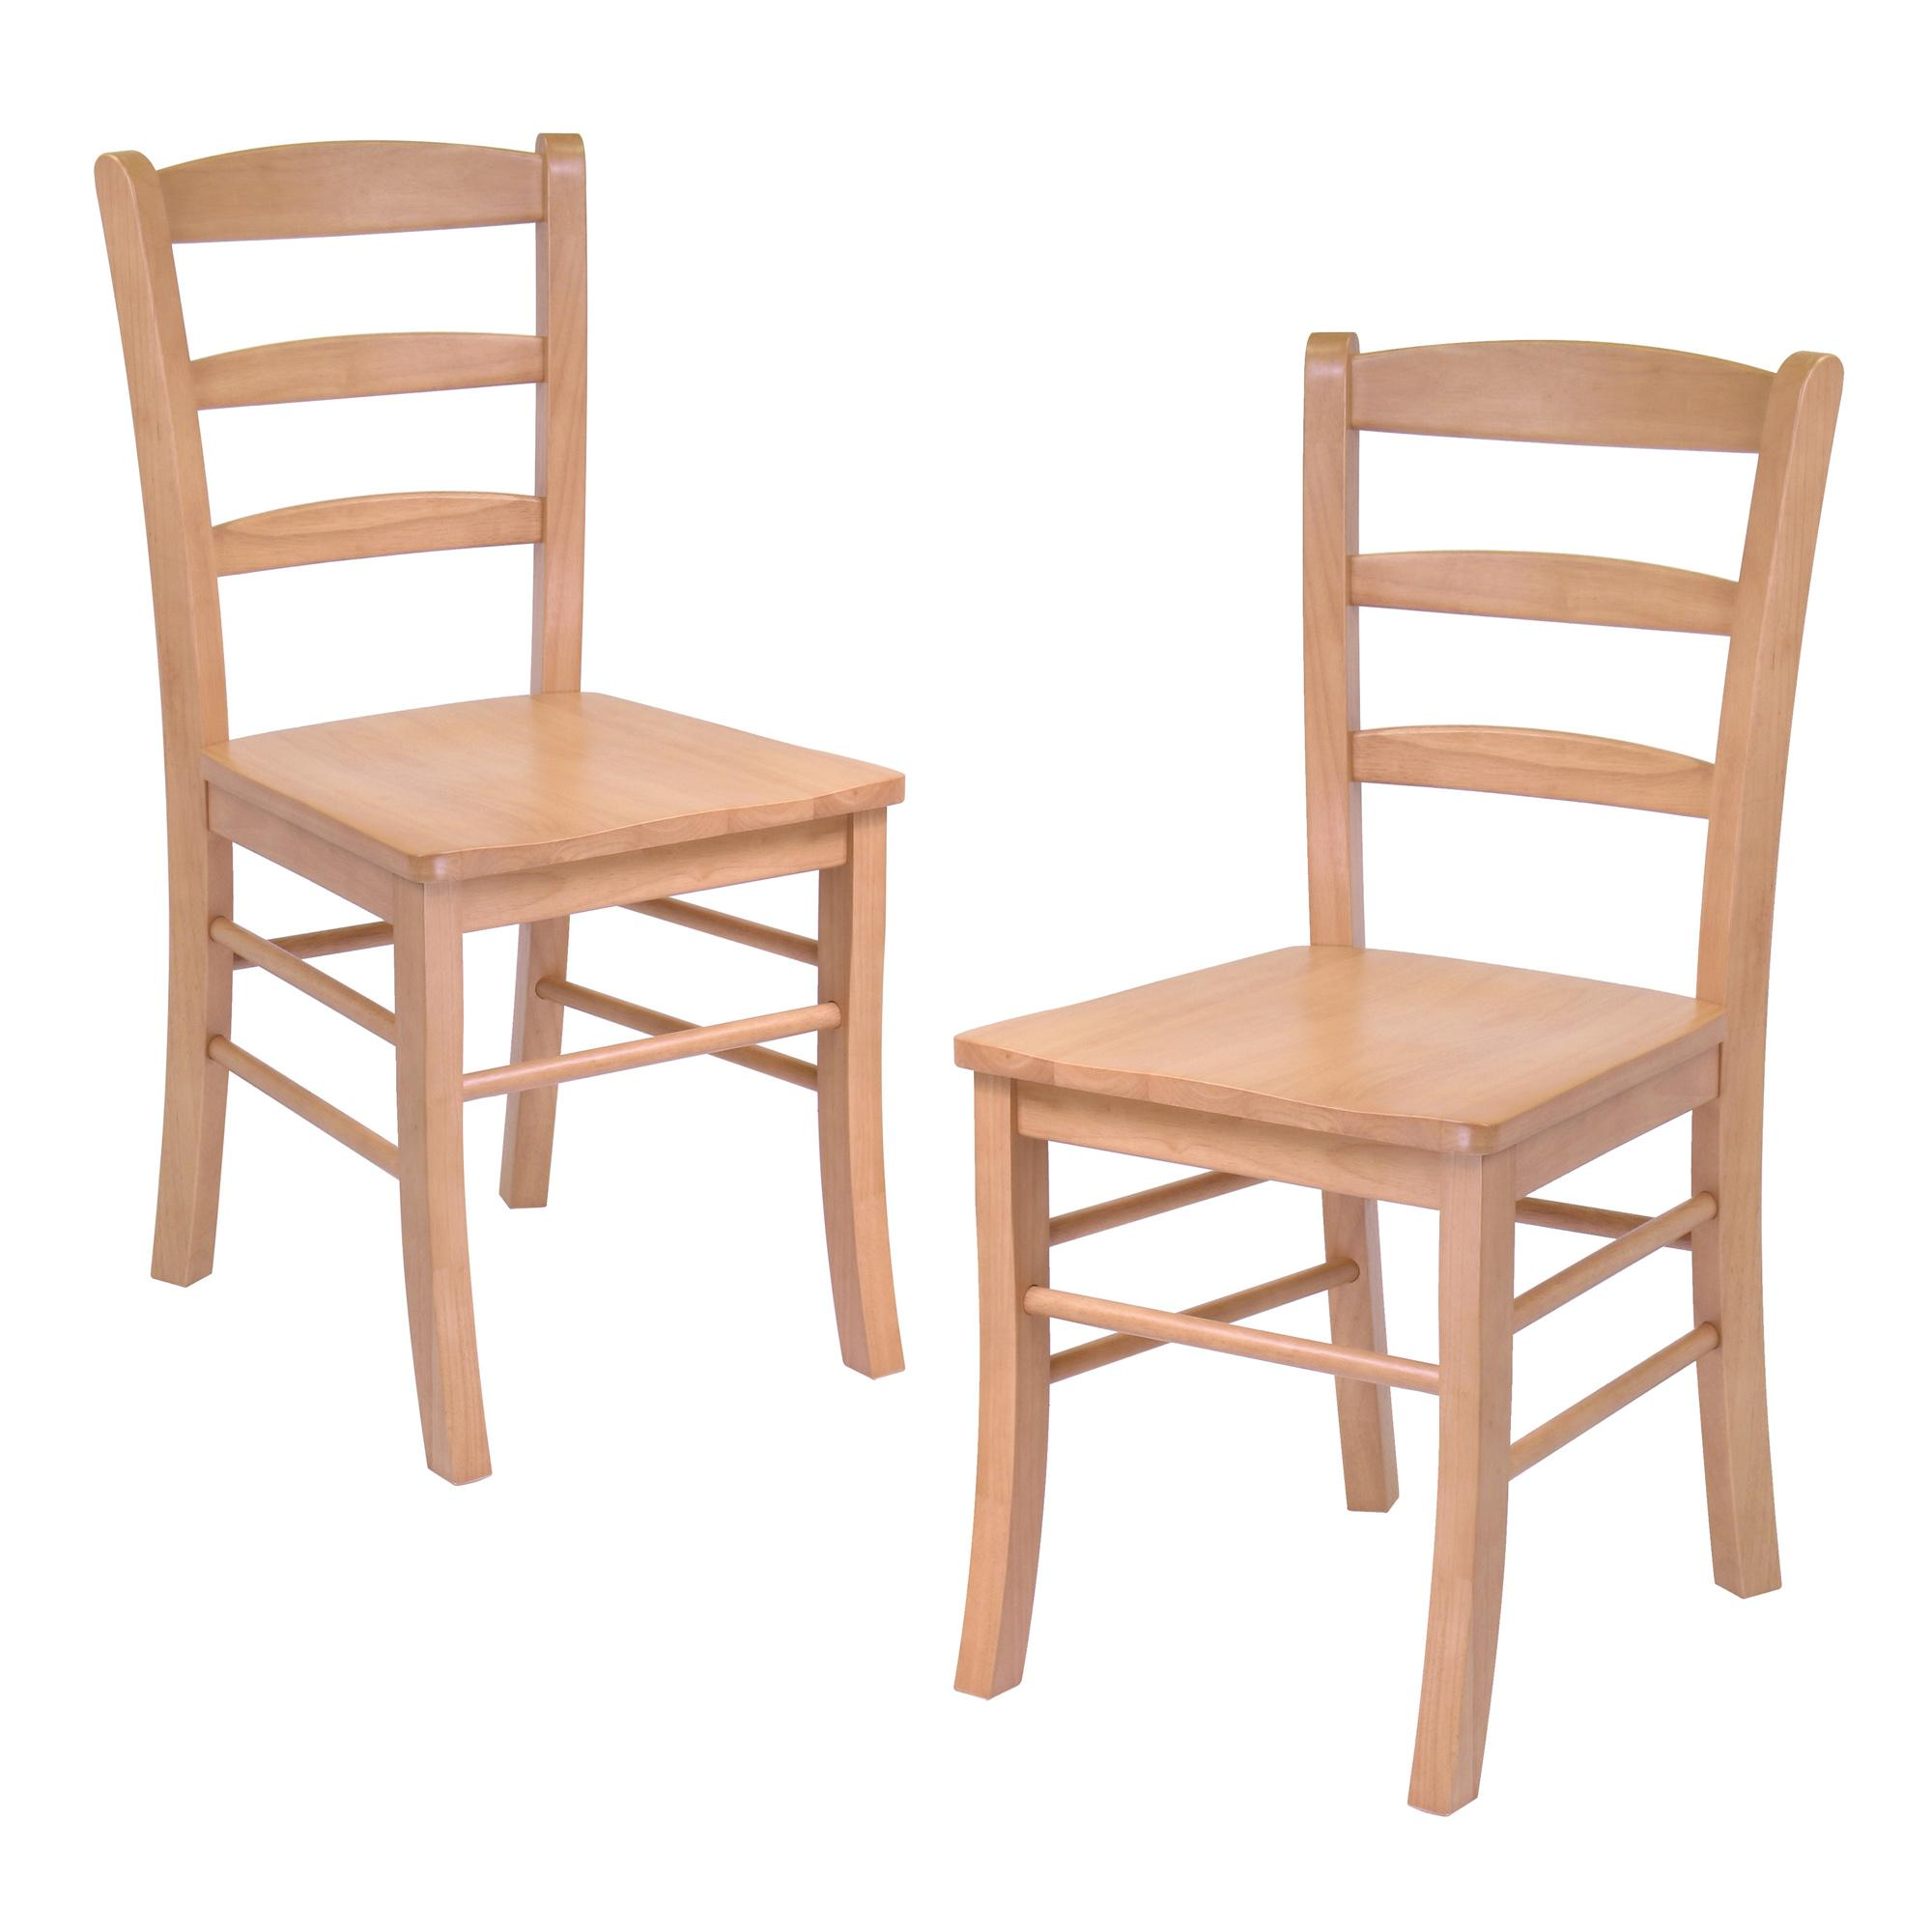 Hannah dining wood side chairs in light oak finish set of 2 ojcommerce - Wooden dining room chairs ...